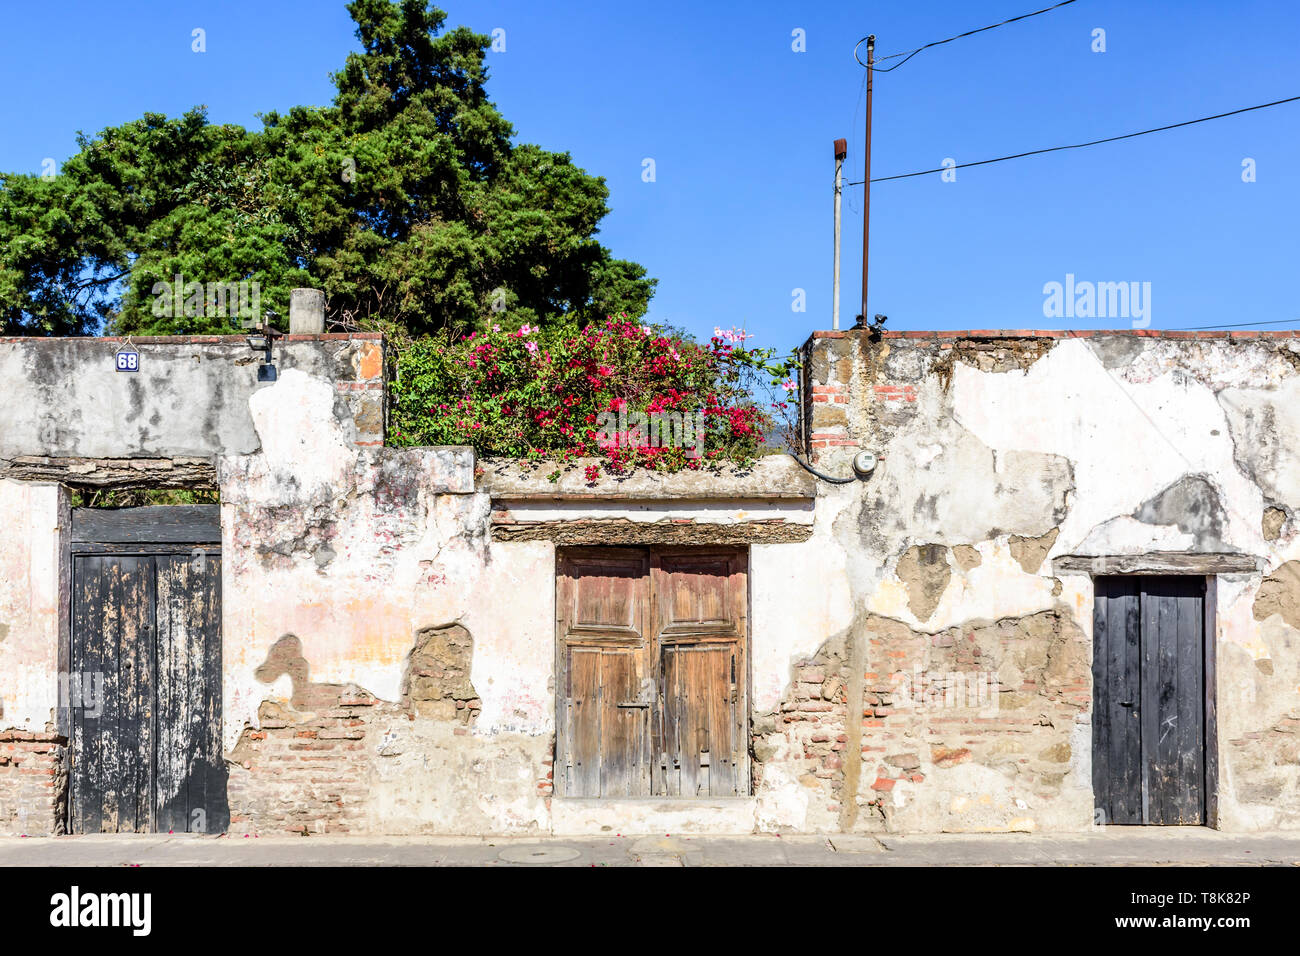 Antigua, Guatemala - April 14, 2019: Old crumbling ruined wall in colonial city & UNESCO World Heritage Site of Antigua. - Stock Image